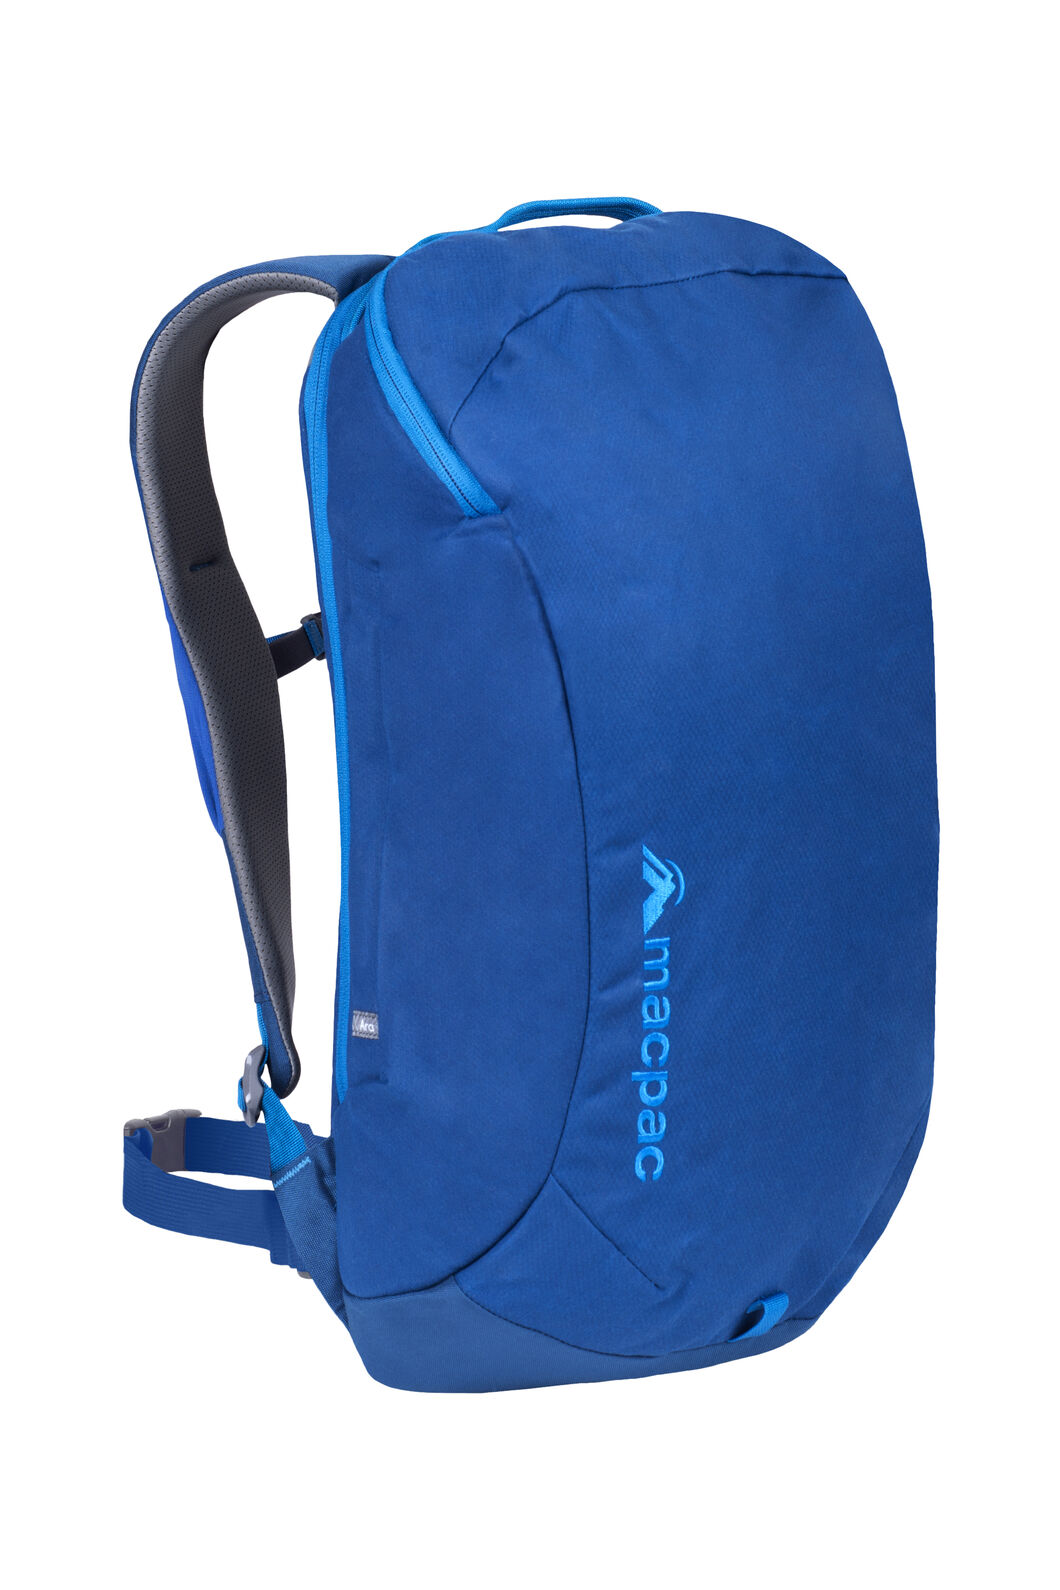 Ara 25L AzTec® Backpack, Poseidon, hi-res